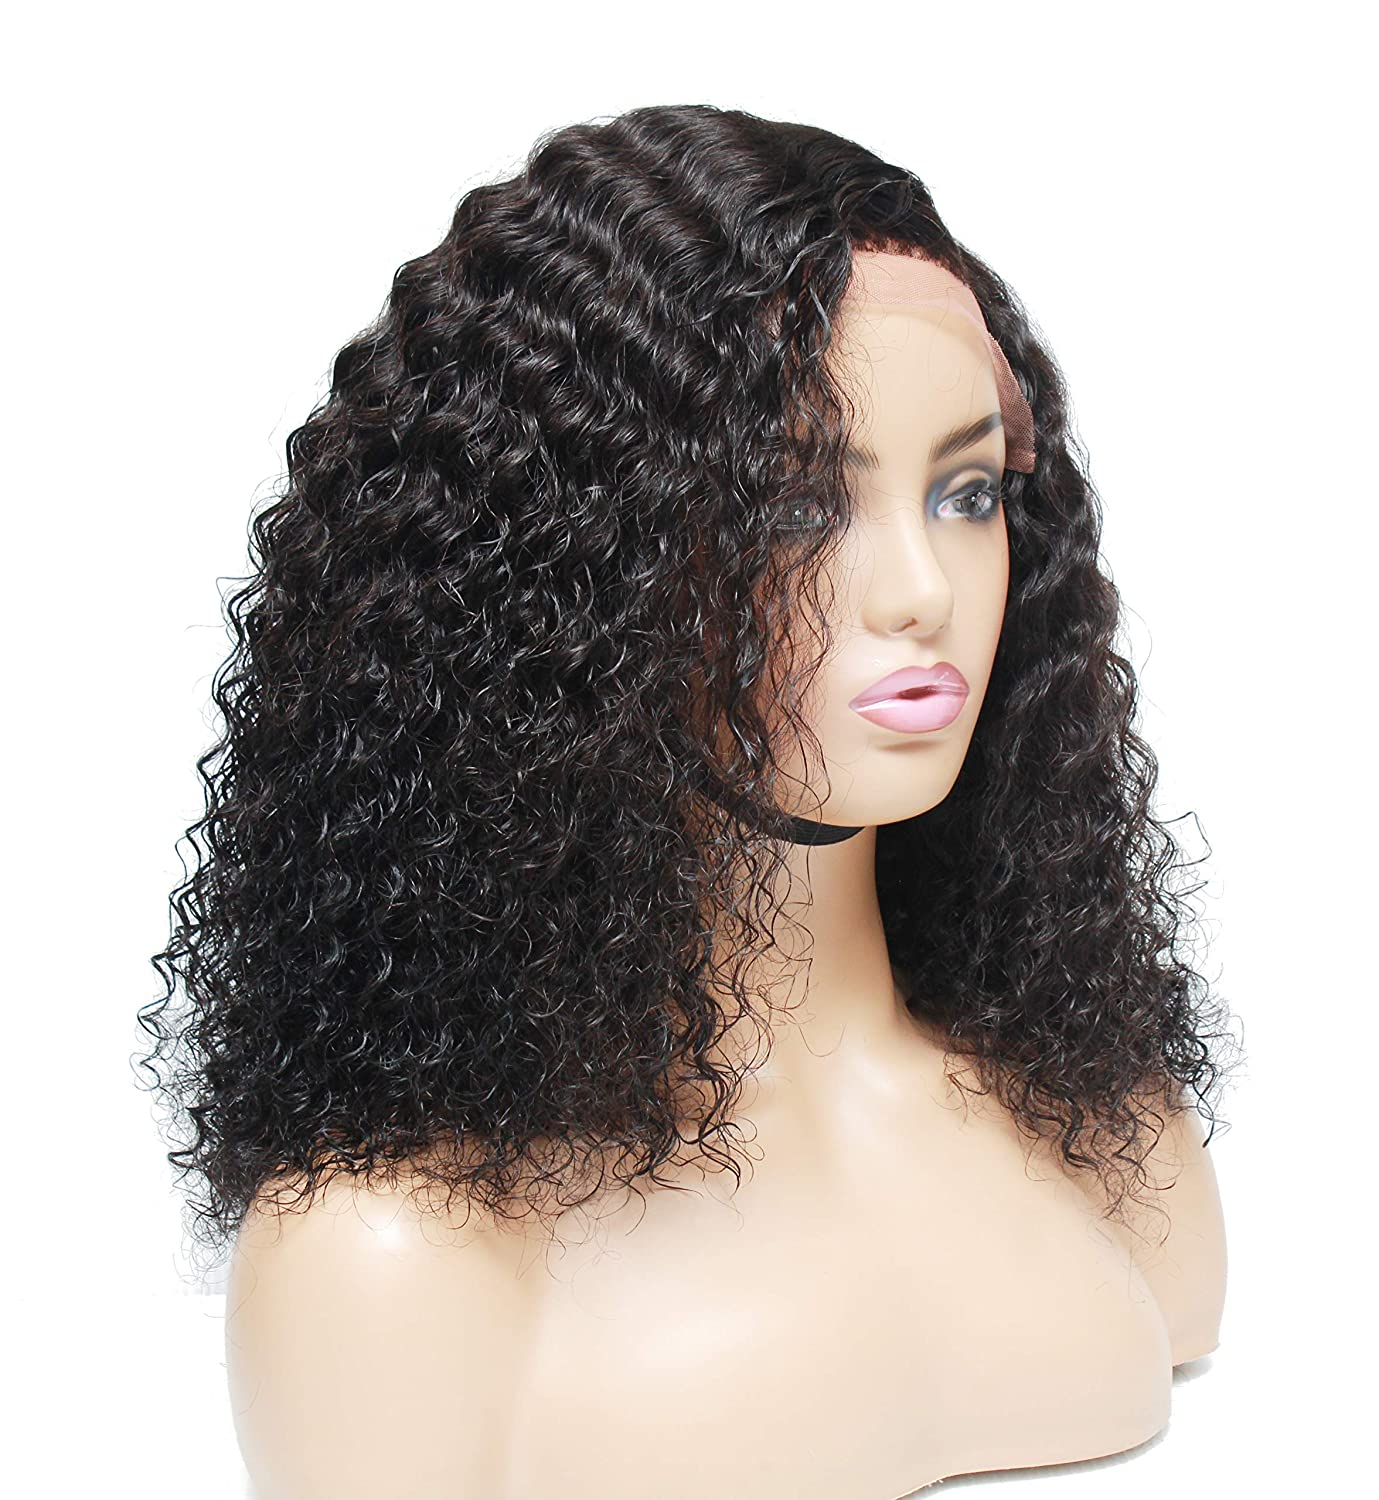 Brazilian human hair wig- Lace online shopping Curly front Max 83% OFF